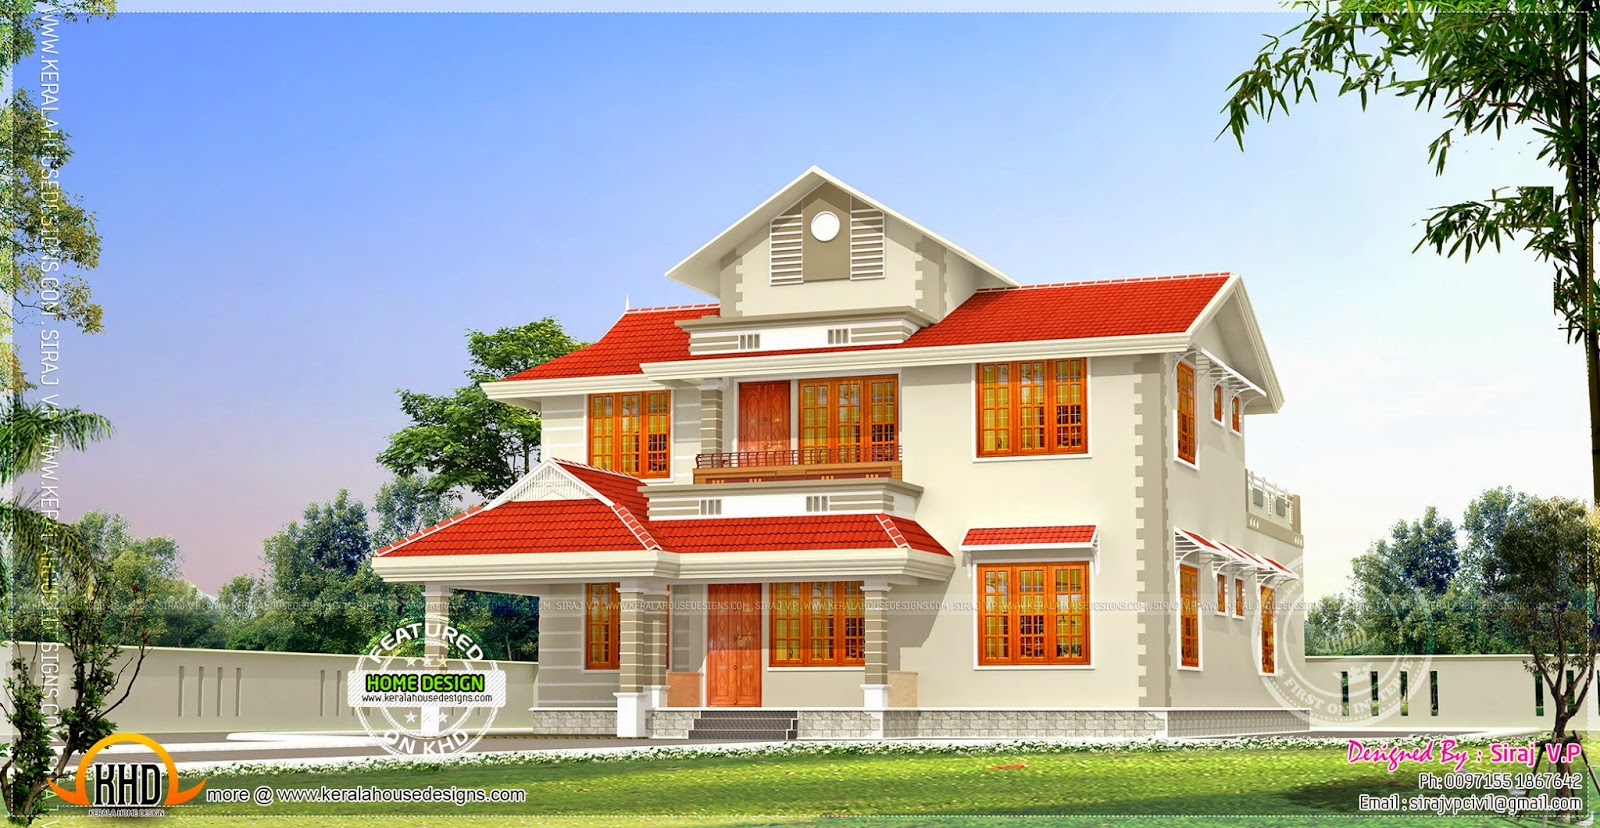 2020 Square Feet Kerala Model Residence Exterior Home Plans Paint Designs Houses